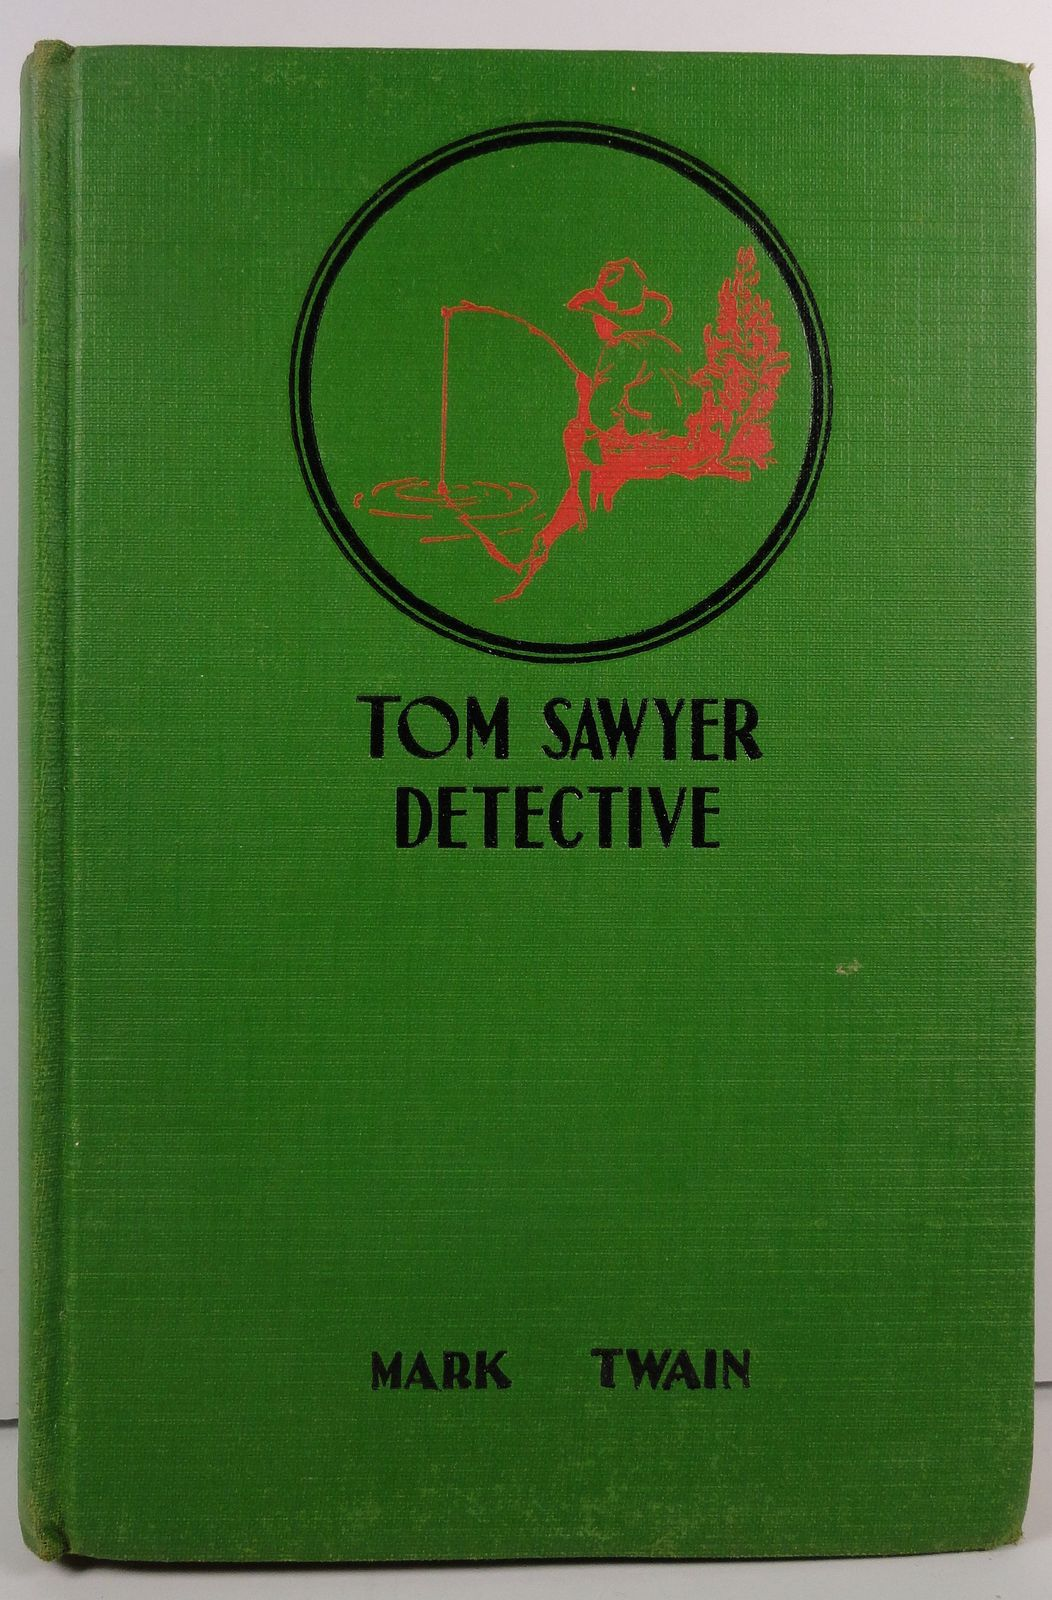 Tom Sawyer Detective and Other Stories by Mark Twain HC/DJ